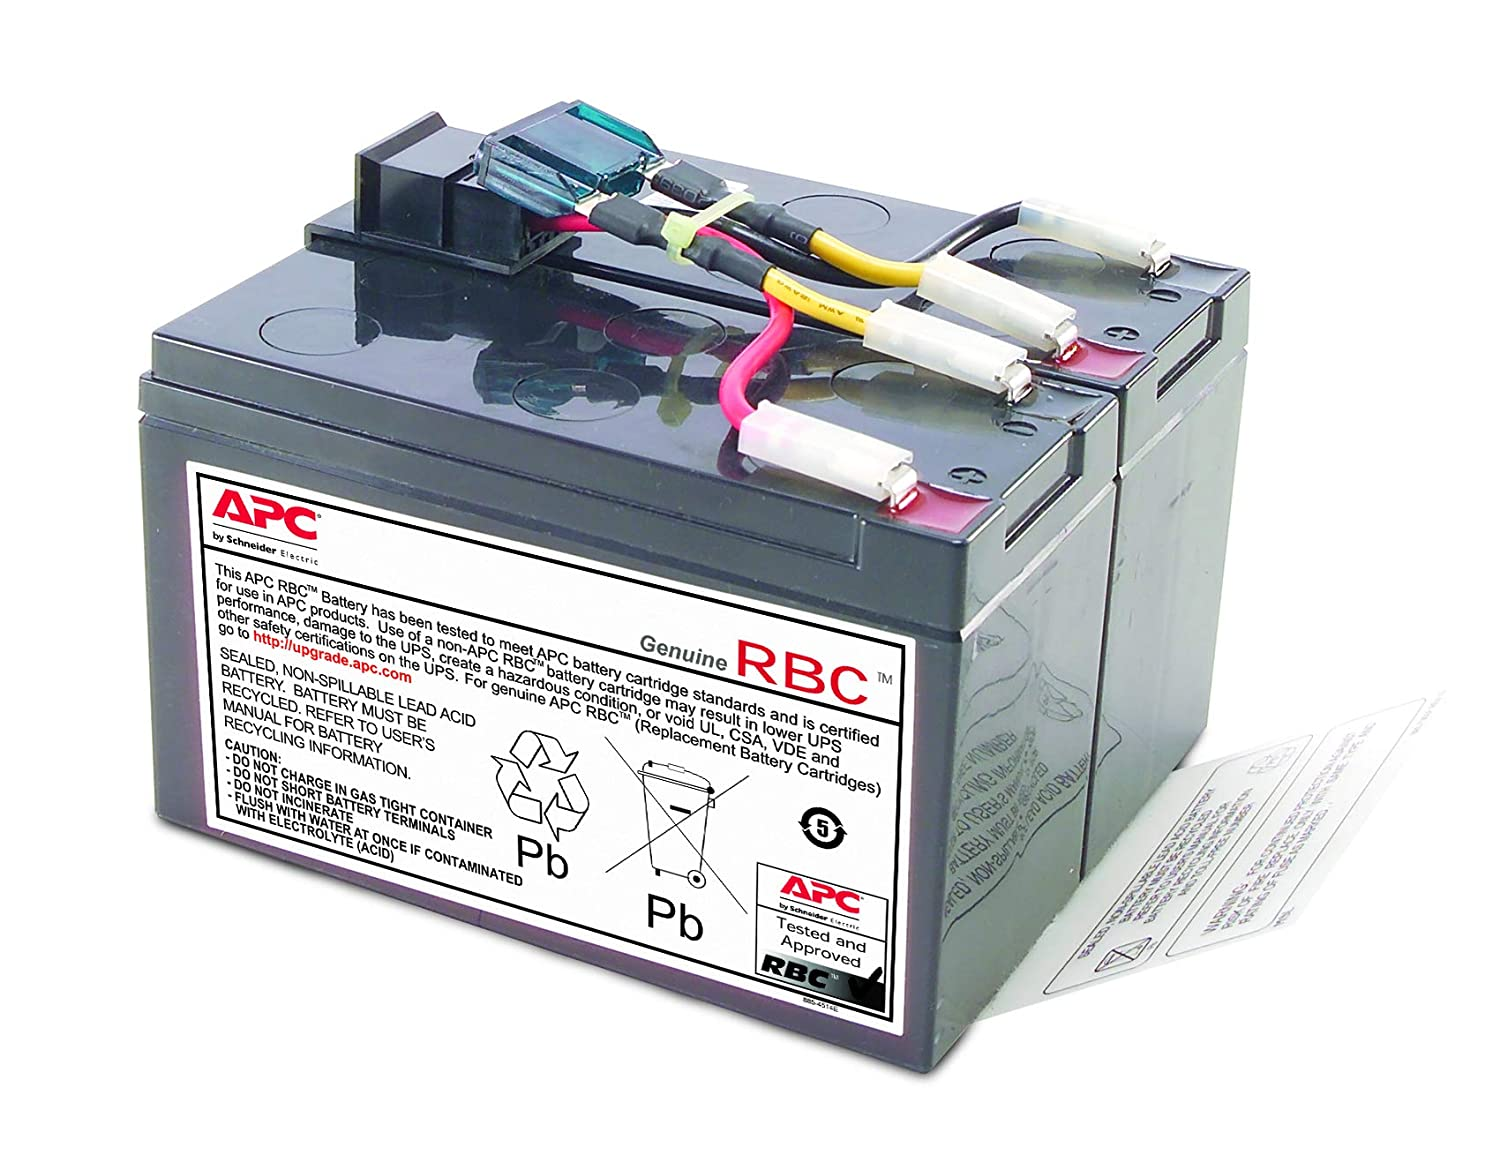 Apc Ups Battery Replacement For Models Smt750 Wiring Money Rbc Smt750us Sua750 And Select Others Rbc48 Home Audio Theater